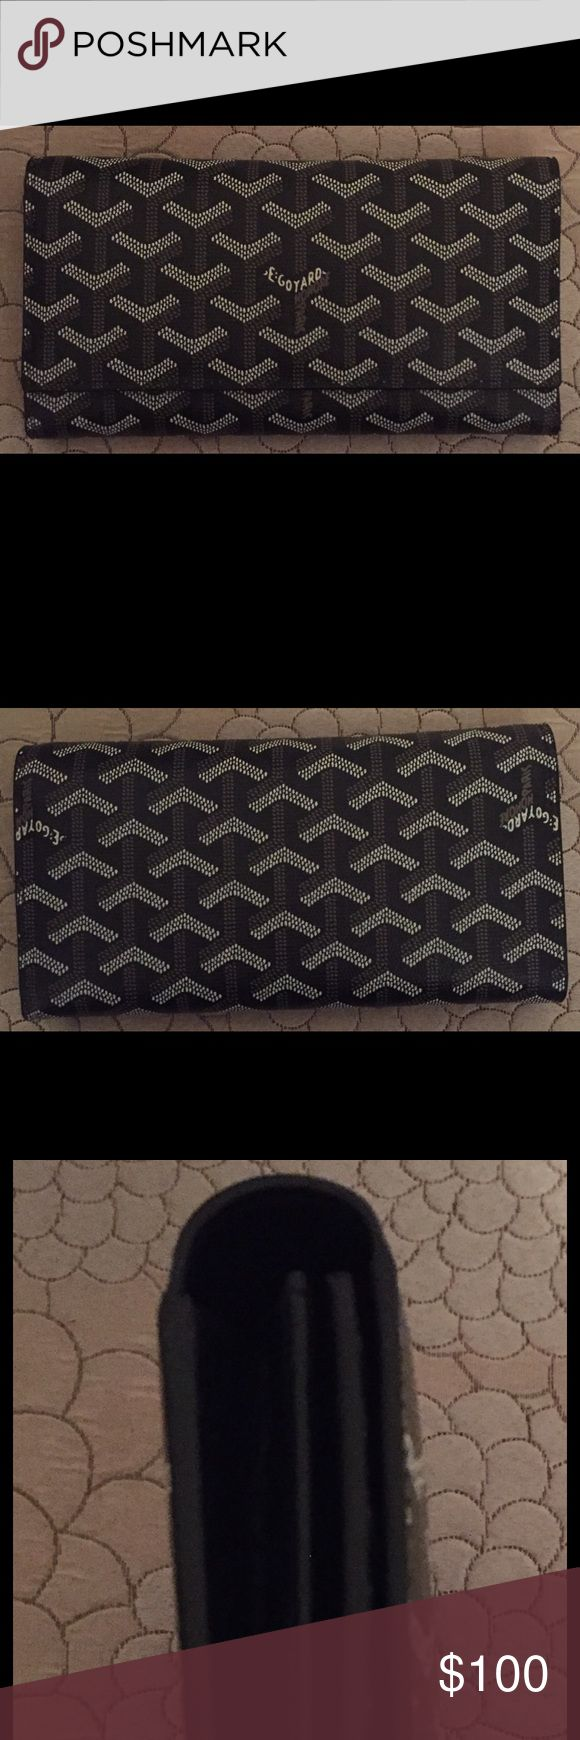 ✨✨✨Goyard Black Wallet✨✨✨ This Goyard wallet is beautiful✨✨✨!!! It's black with yellow interior, has a lot of credit card slots, room for checkbook, cash, coin, etc... I've only used about 3 times. It's in excellent condition. Price reflects authenticity. THIS IS NOT AUTHENTIC!!! It is very good quality 1:1. The pictures in post are of all sides of the wallet inside and out. Wallet is very clean and from smoke/pet free home. Goyard Bags Wallets